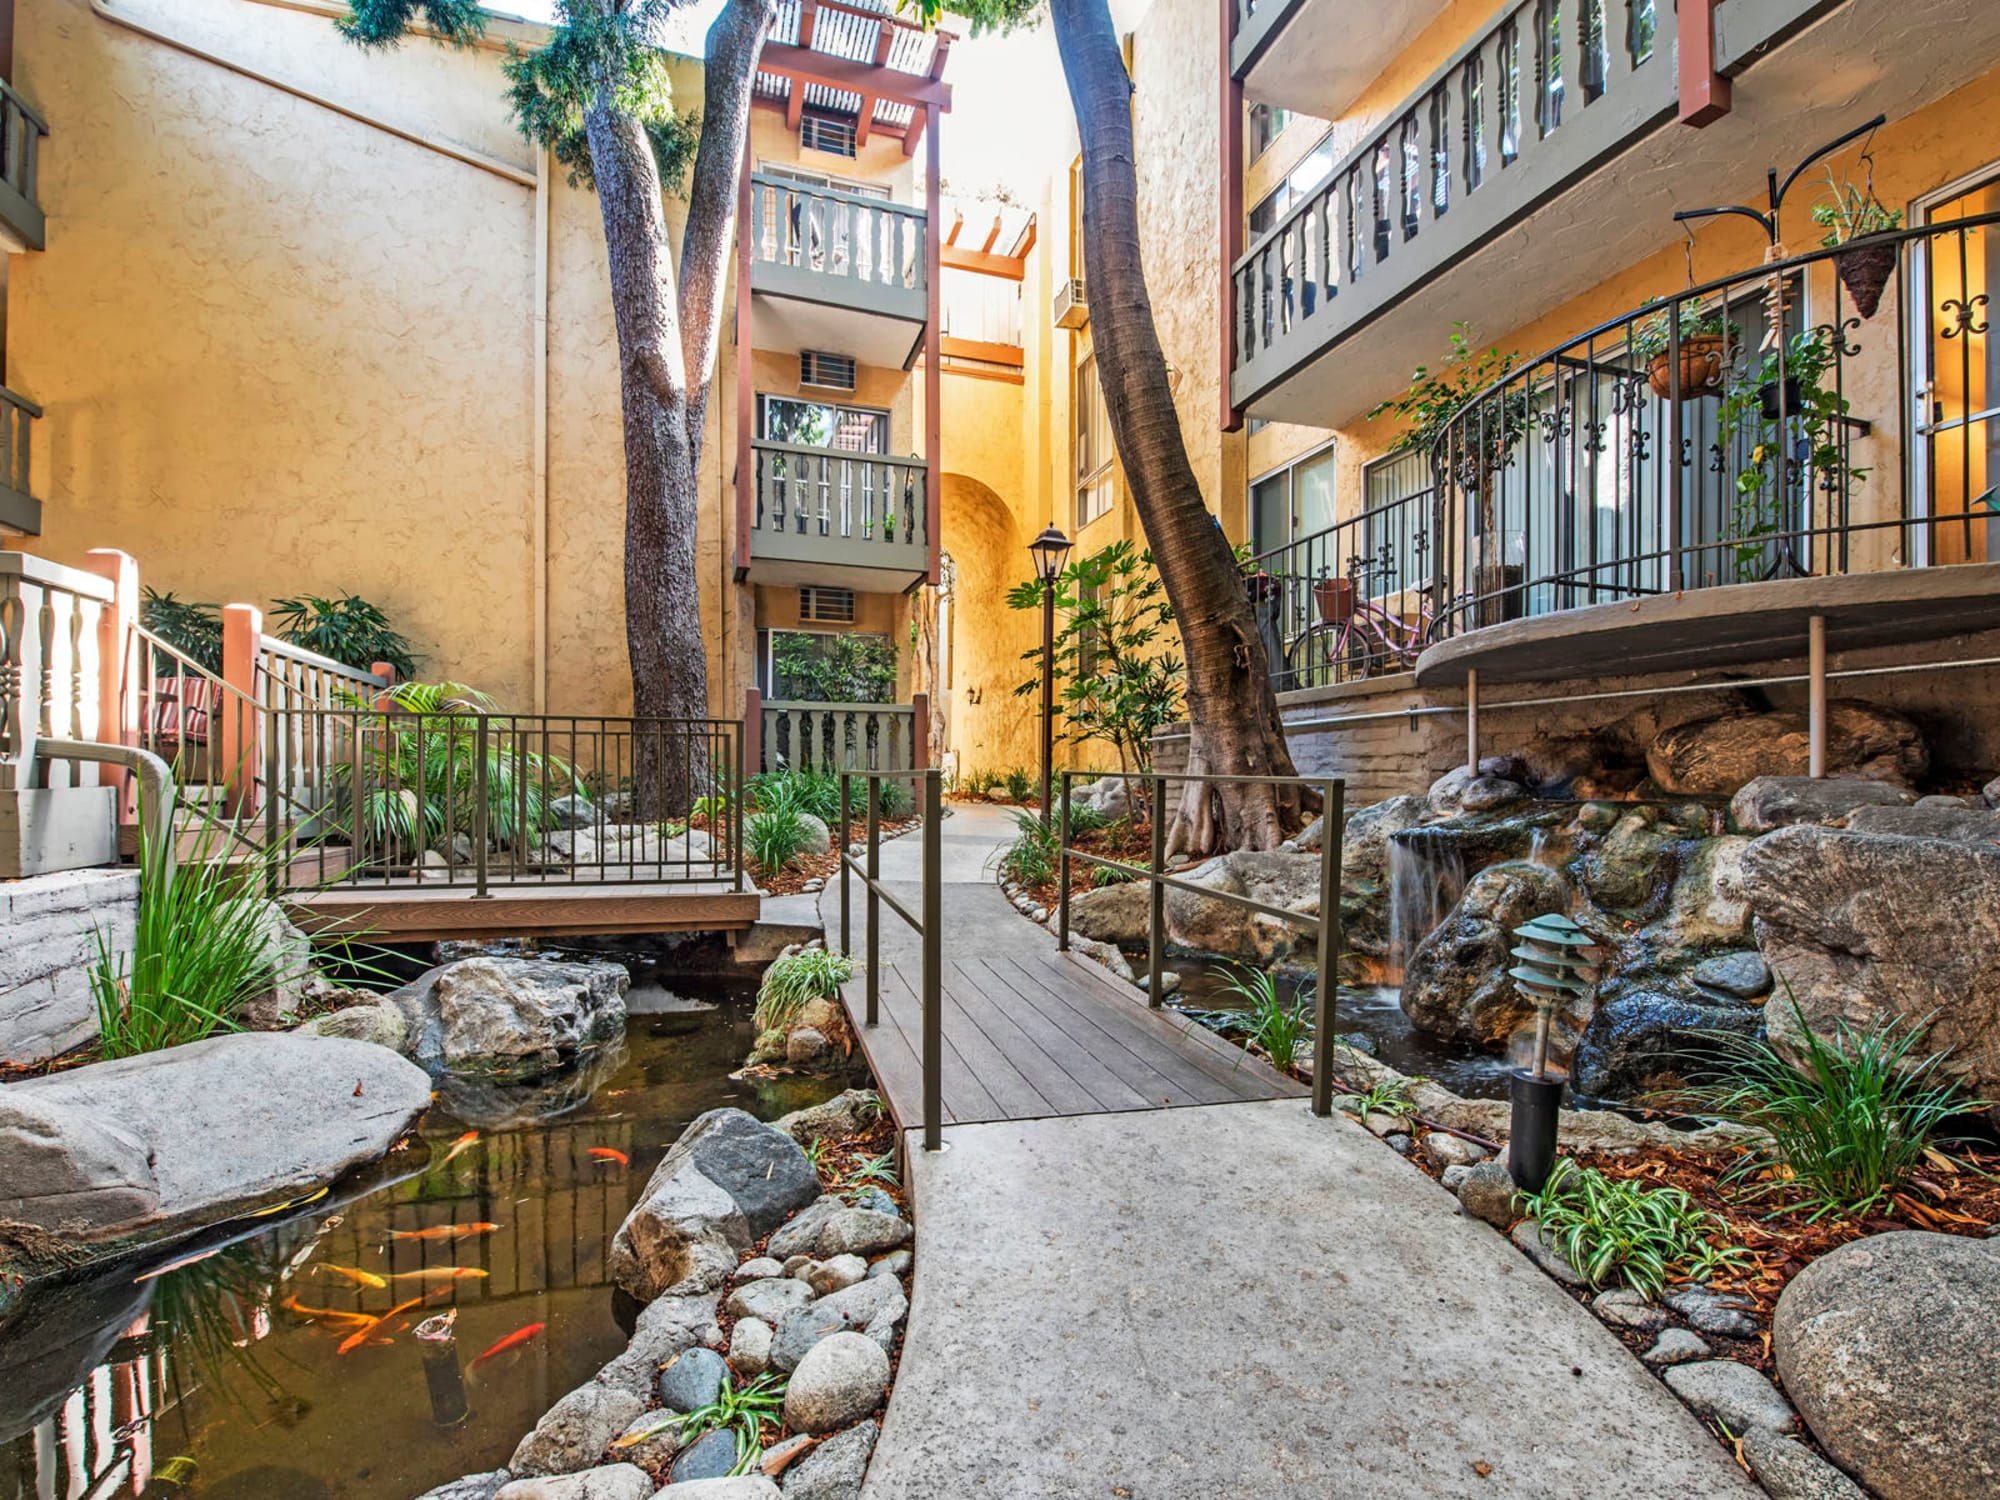 Walkway over a koi pond and with a small waterfall at Mediterranean Village in West Hollywood, California